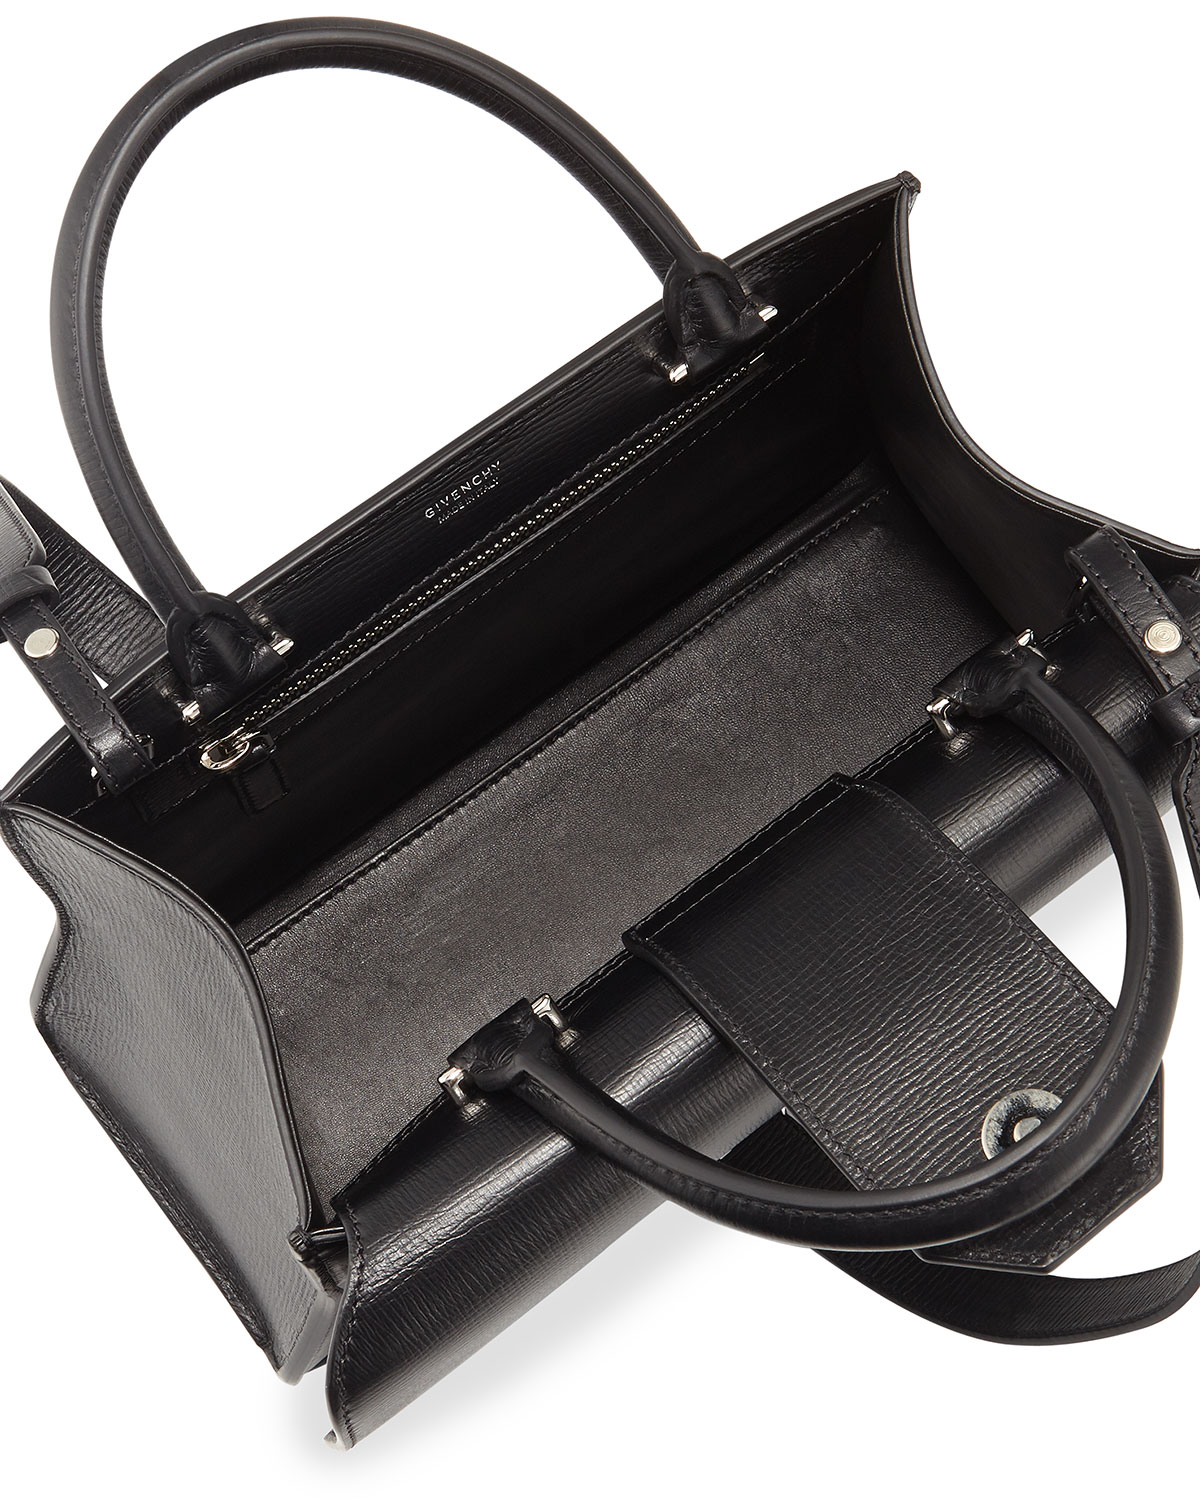 62fa6c9754c6 Kaitorikohi Chanel Chevron Top Steering Wheel Flap Bag Small. Gallery. Lyst  Givenchy Obsedia Top Handle Small Leather Satchel Bag In Black